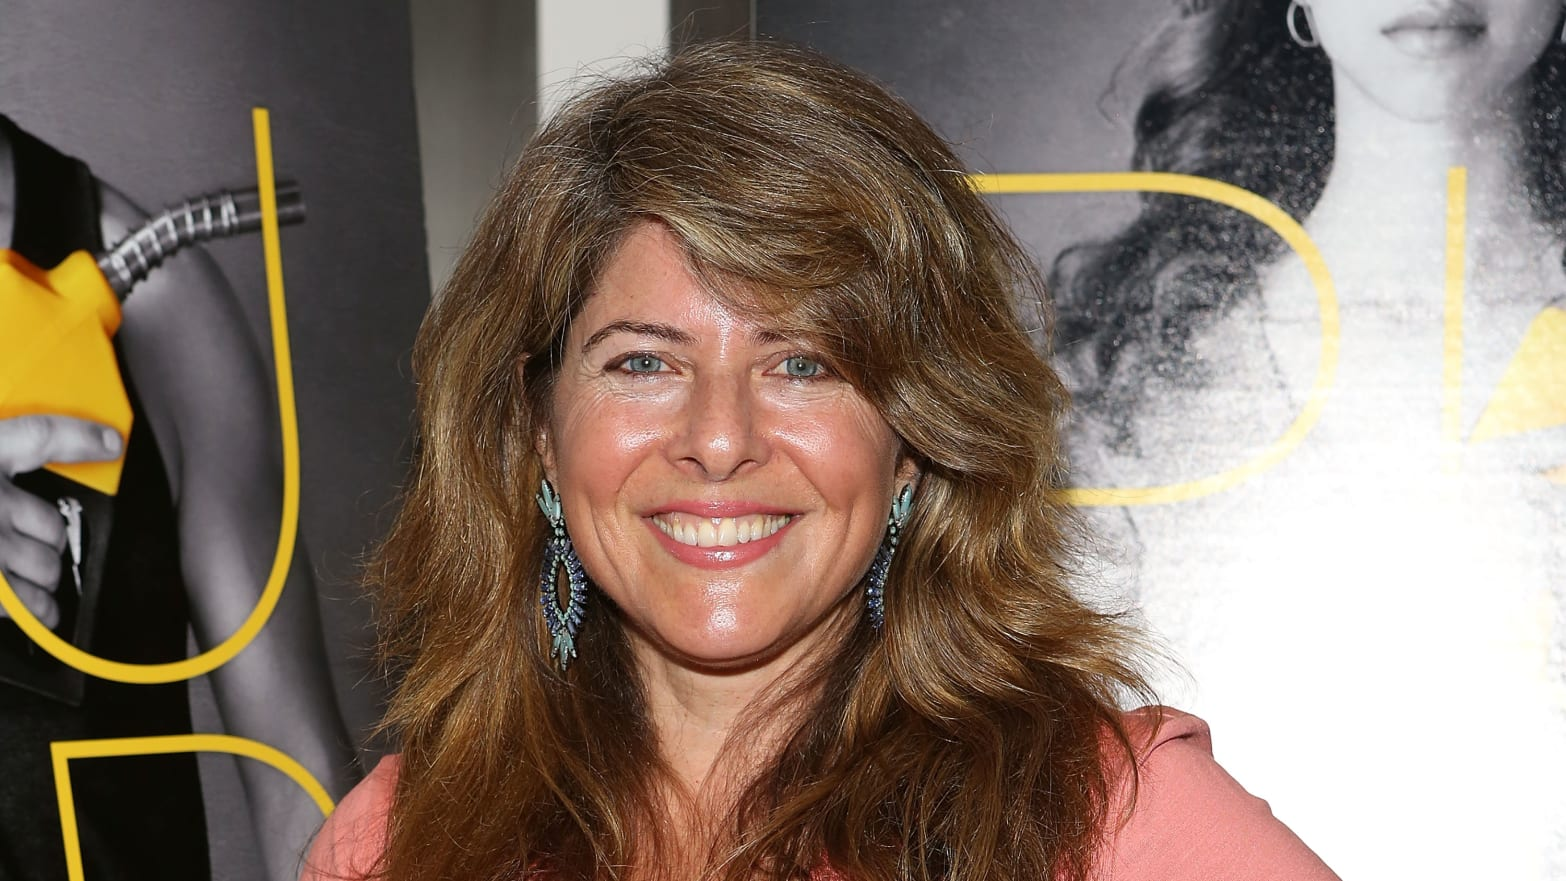 Naomi Wolf's Publisher 'Discussing Corrections' After Disastrous Radio Interview